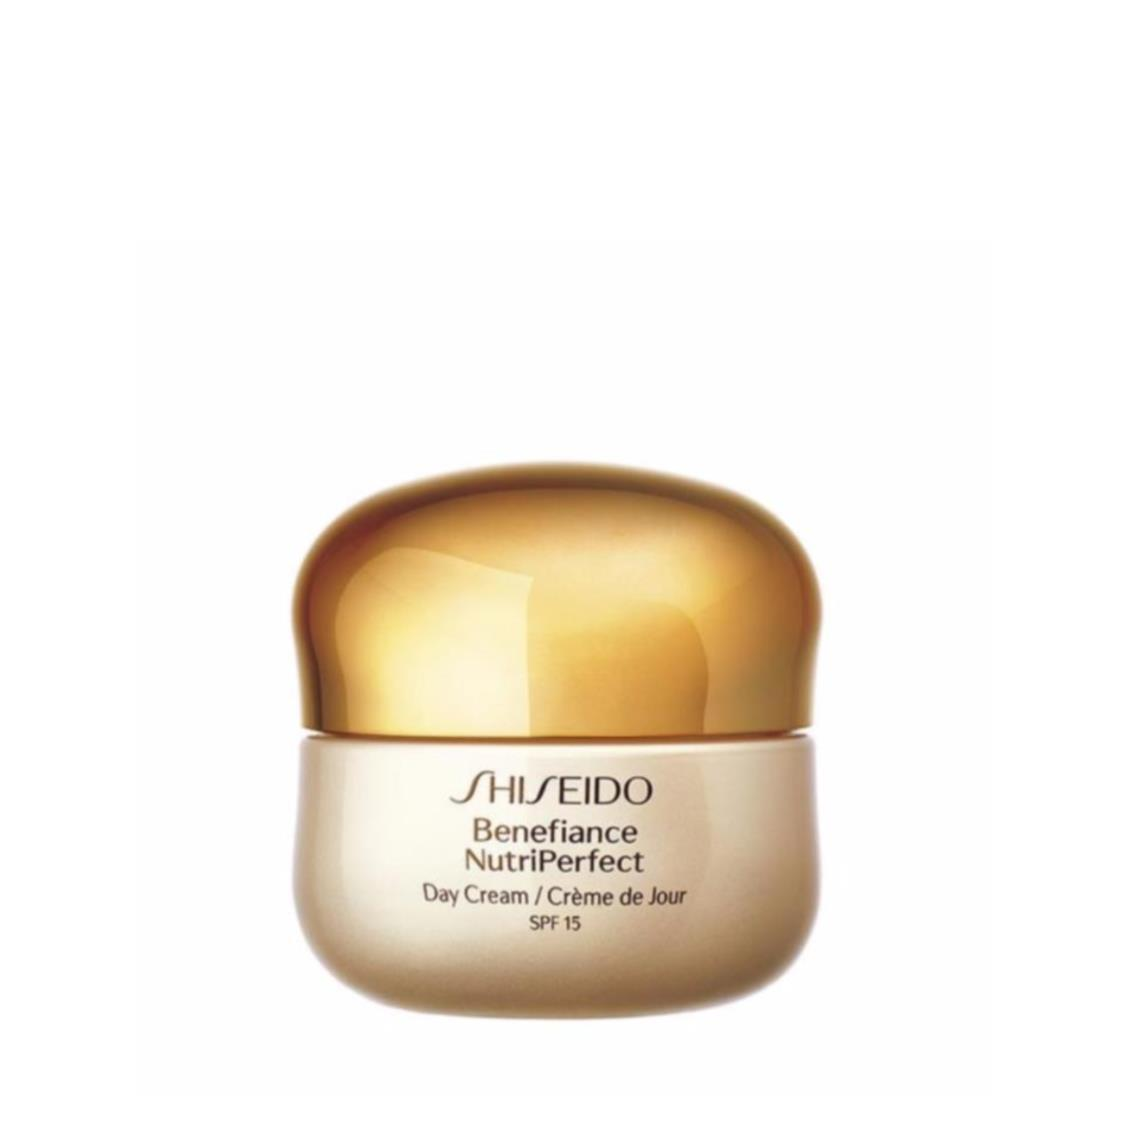 Benefiance NutriPerfect Day Cream 50ml